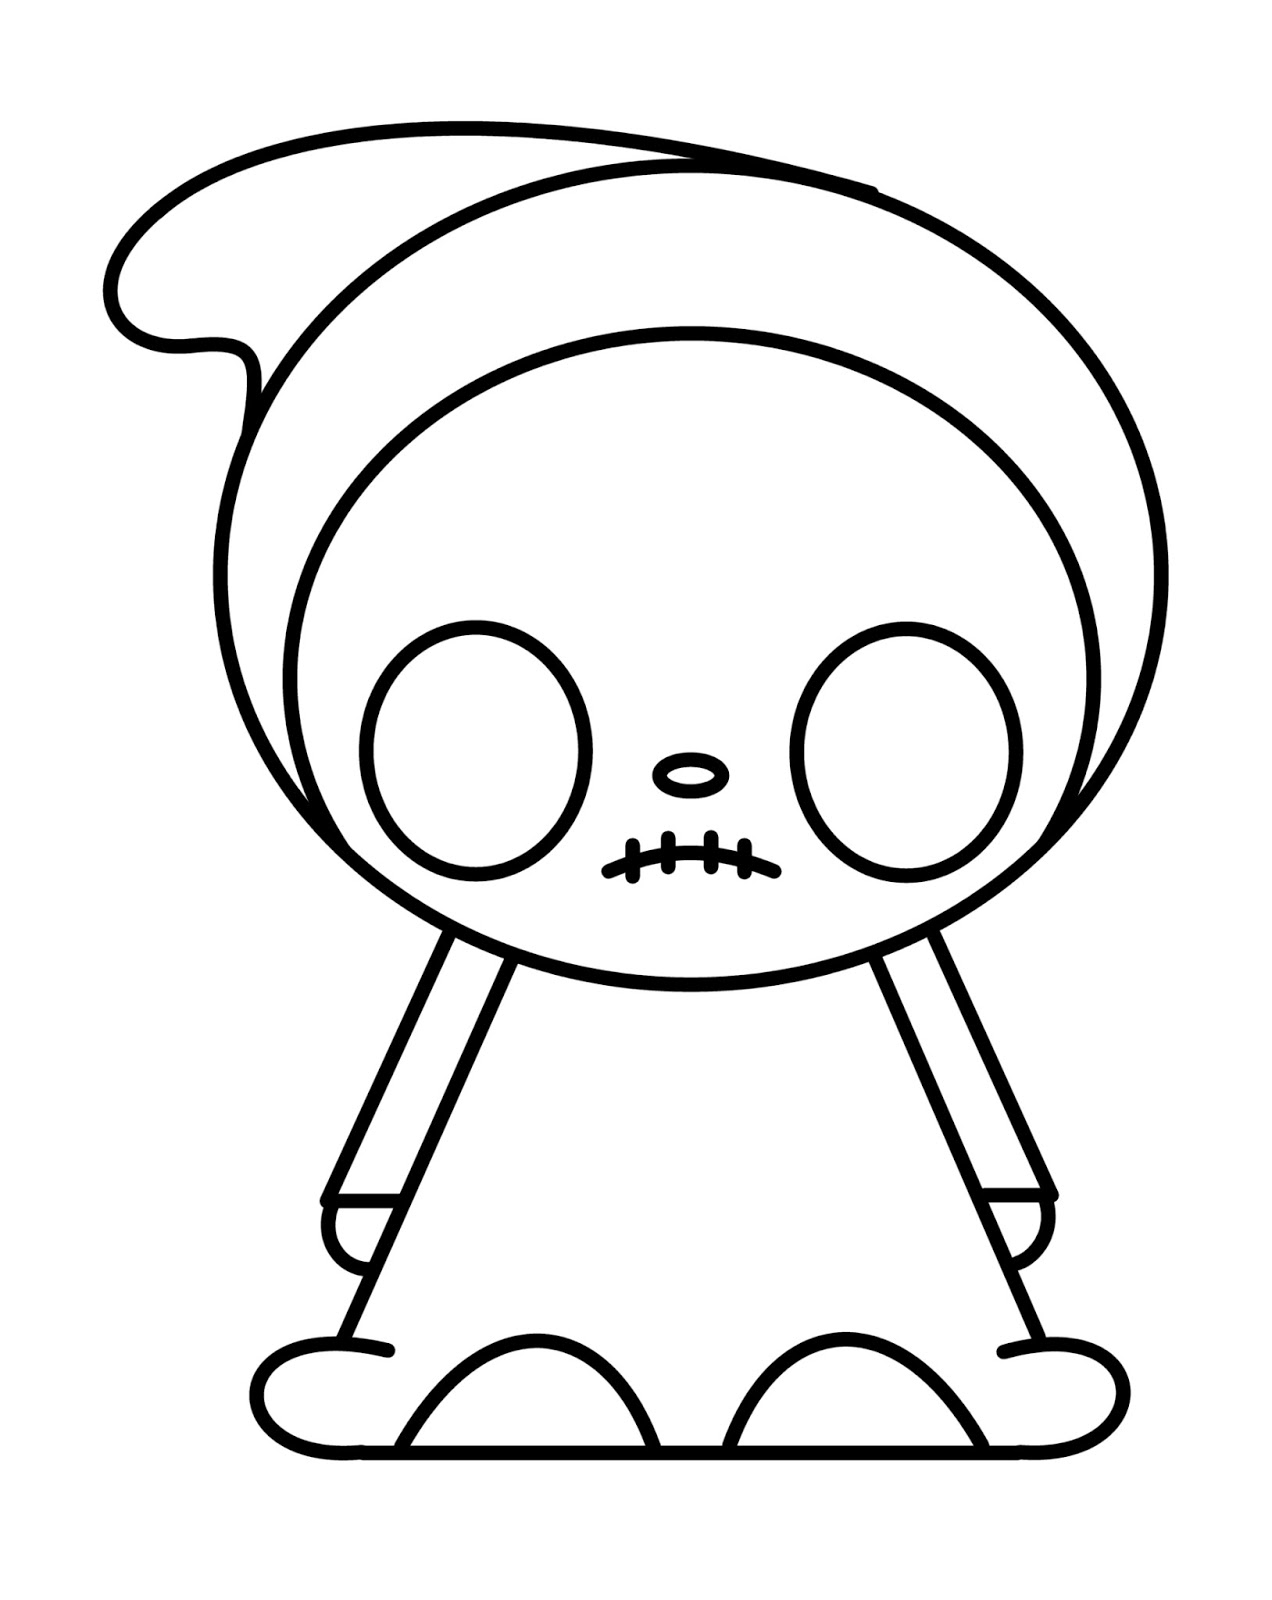 Cute n kawaii how to draw a emo kawaii i love the way this little emo kawaii turned out when coloring him i used a light steel blue for his face hands and feet i also added the gold cross as voltagebd Choice Image